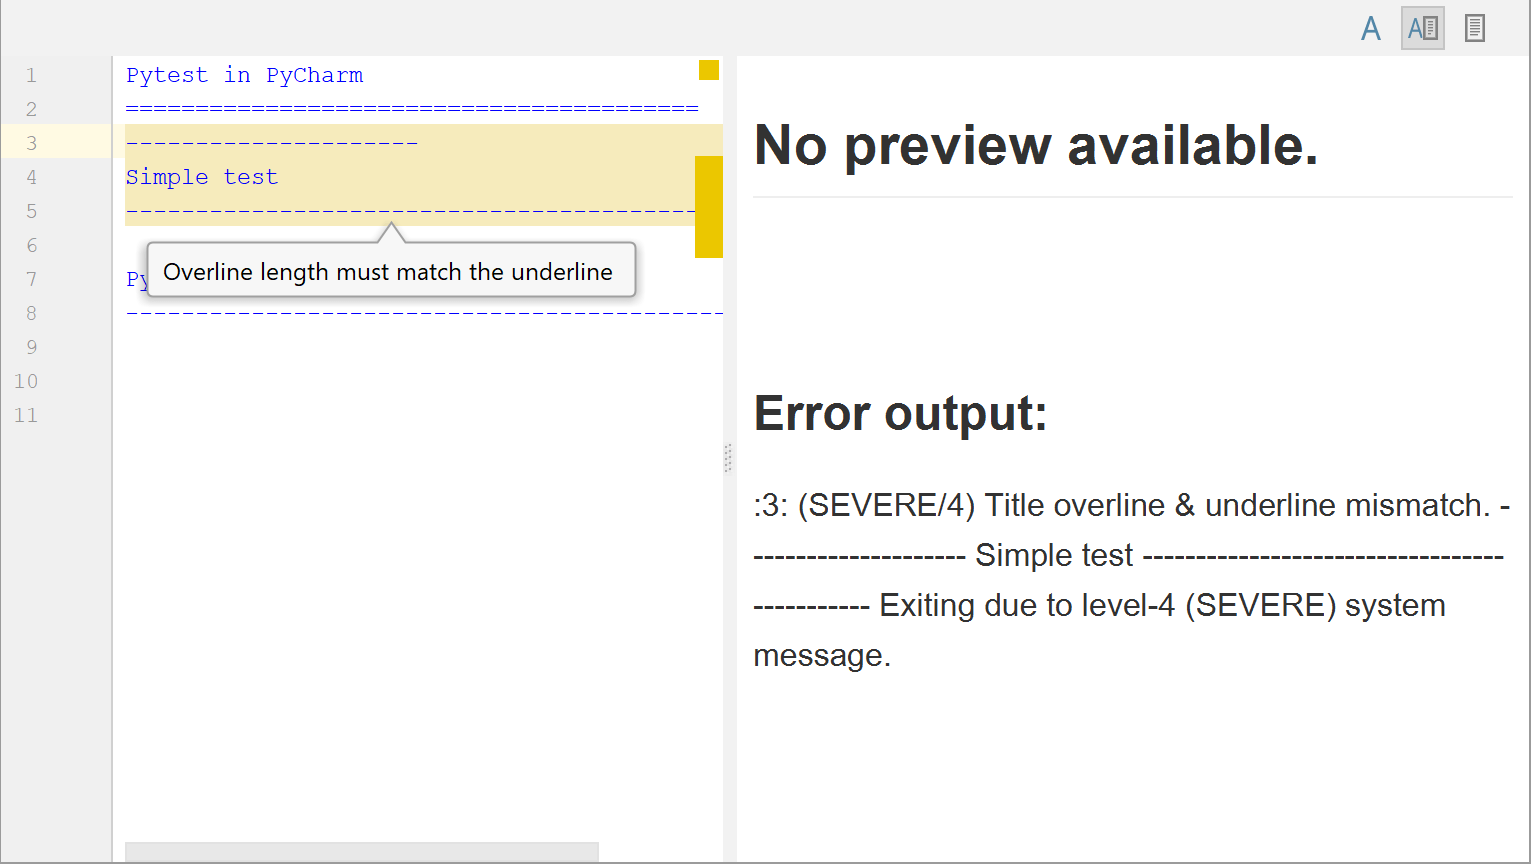 Markup error detected